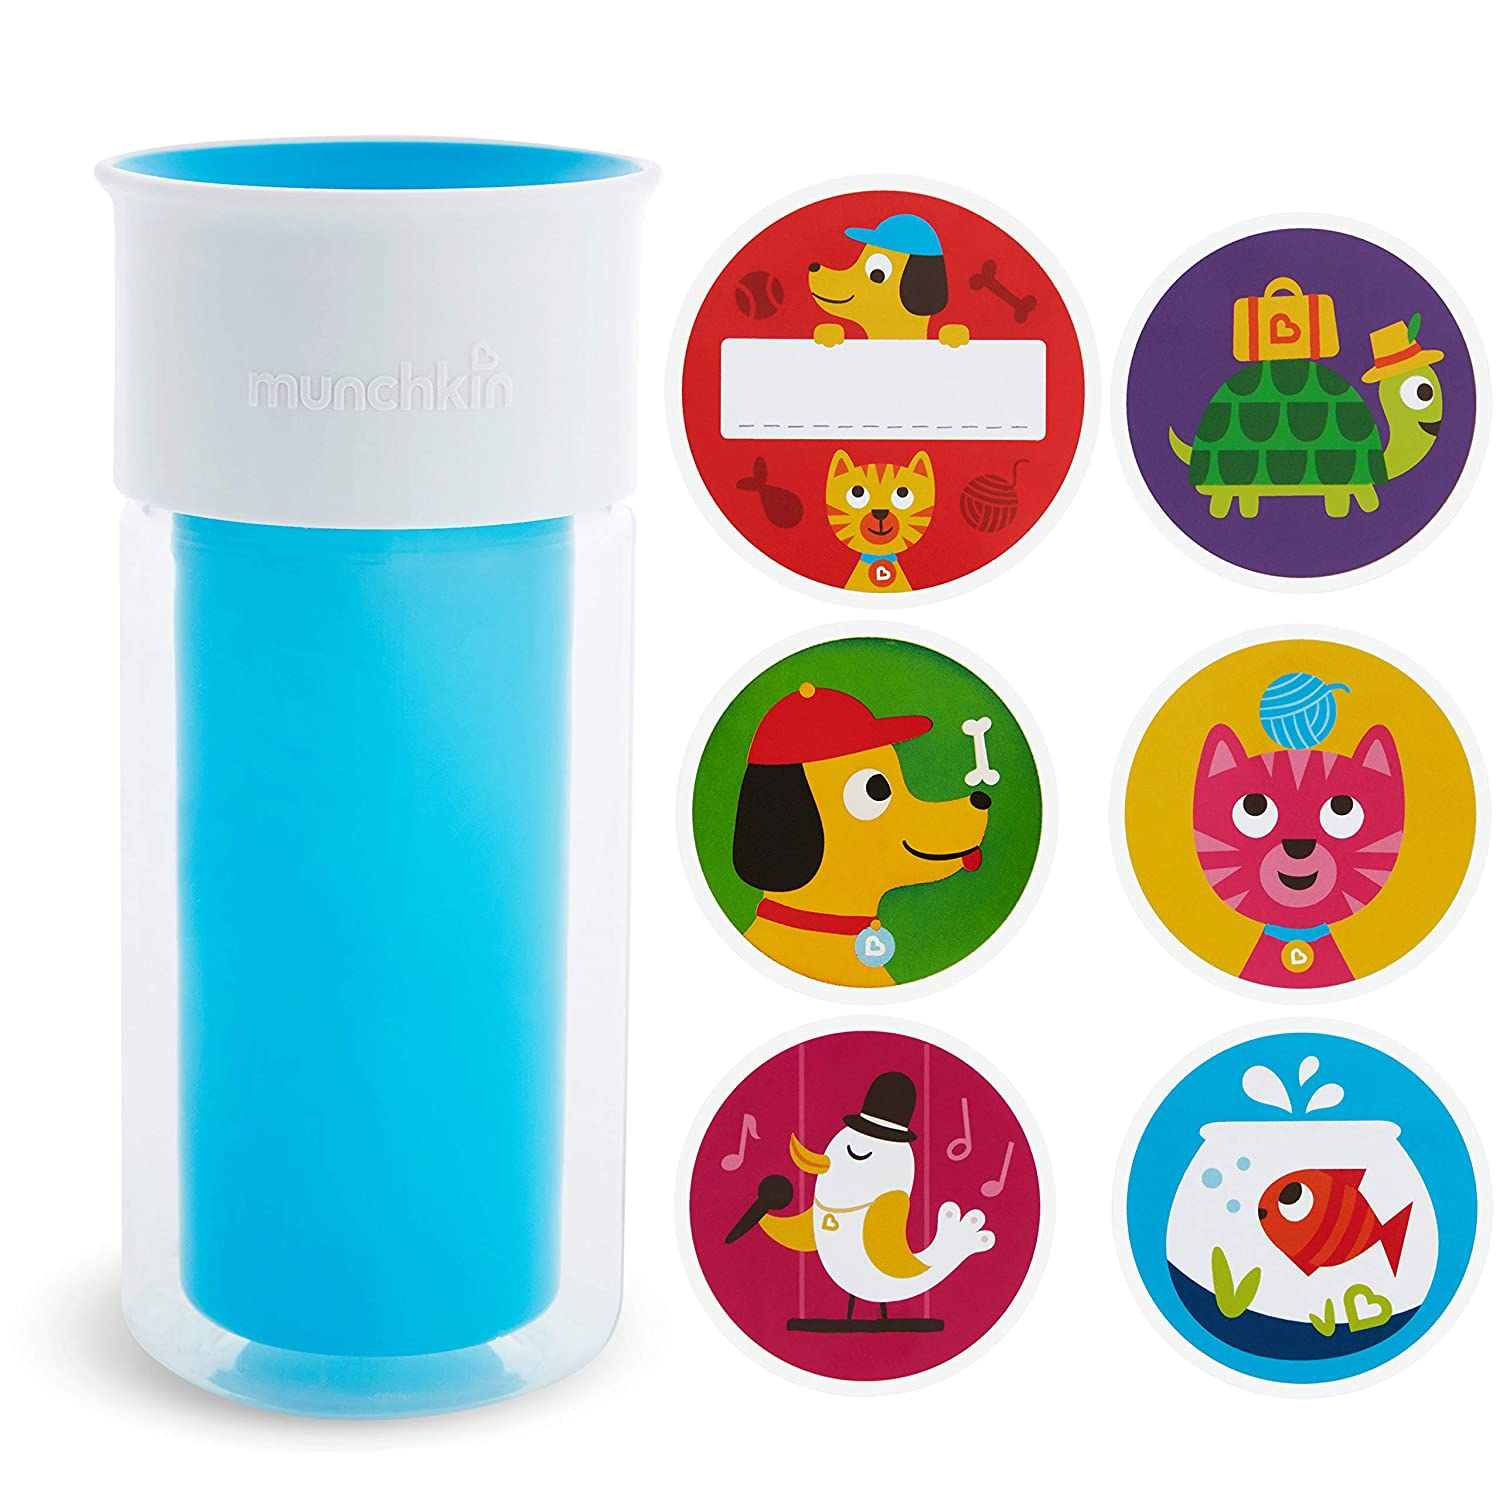 Munchkin Miracle 360 Insulated Sippy Cup, Includes Stickers To Customize Cup